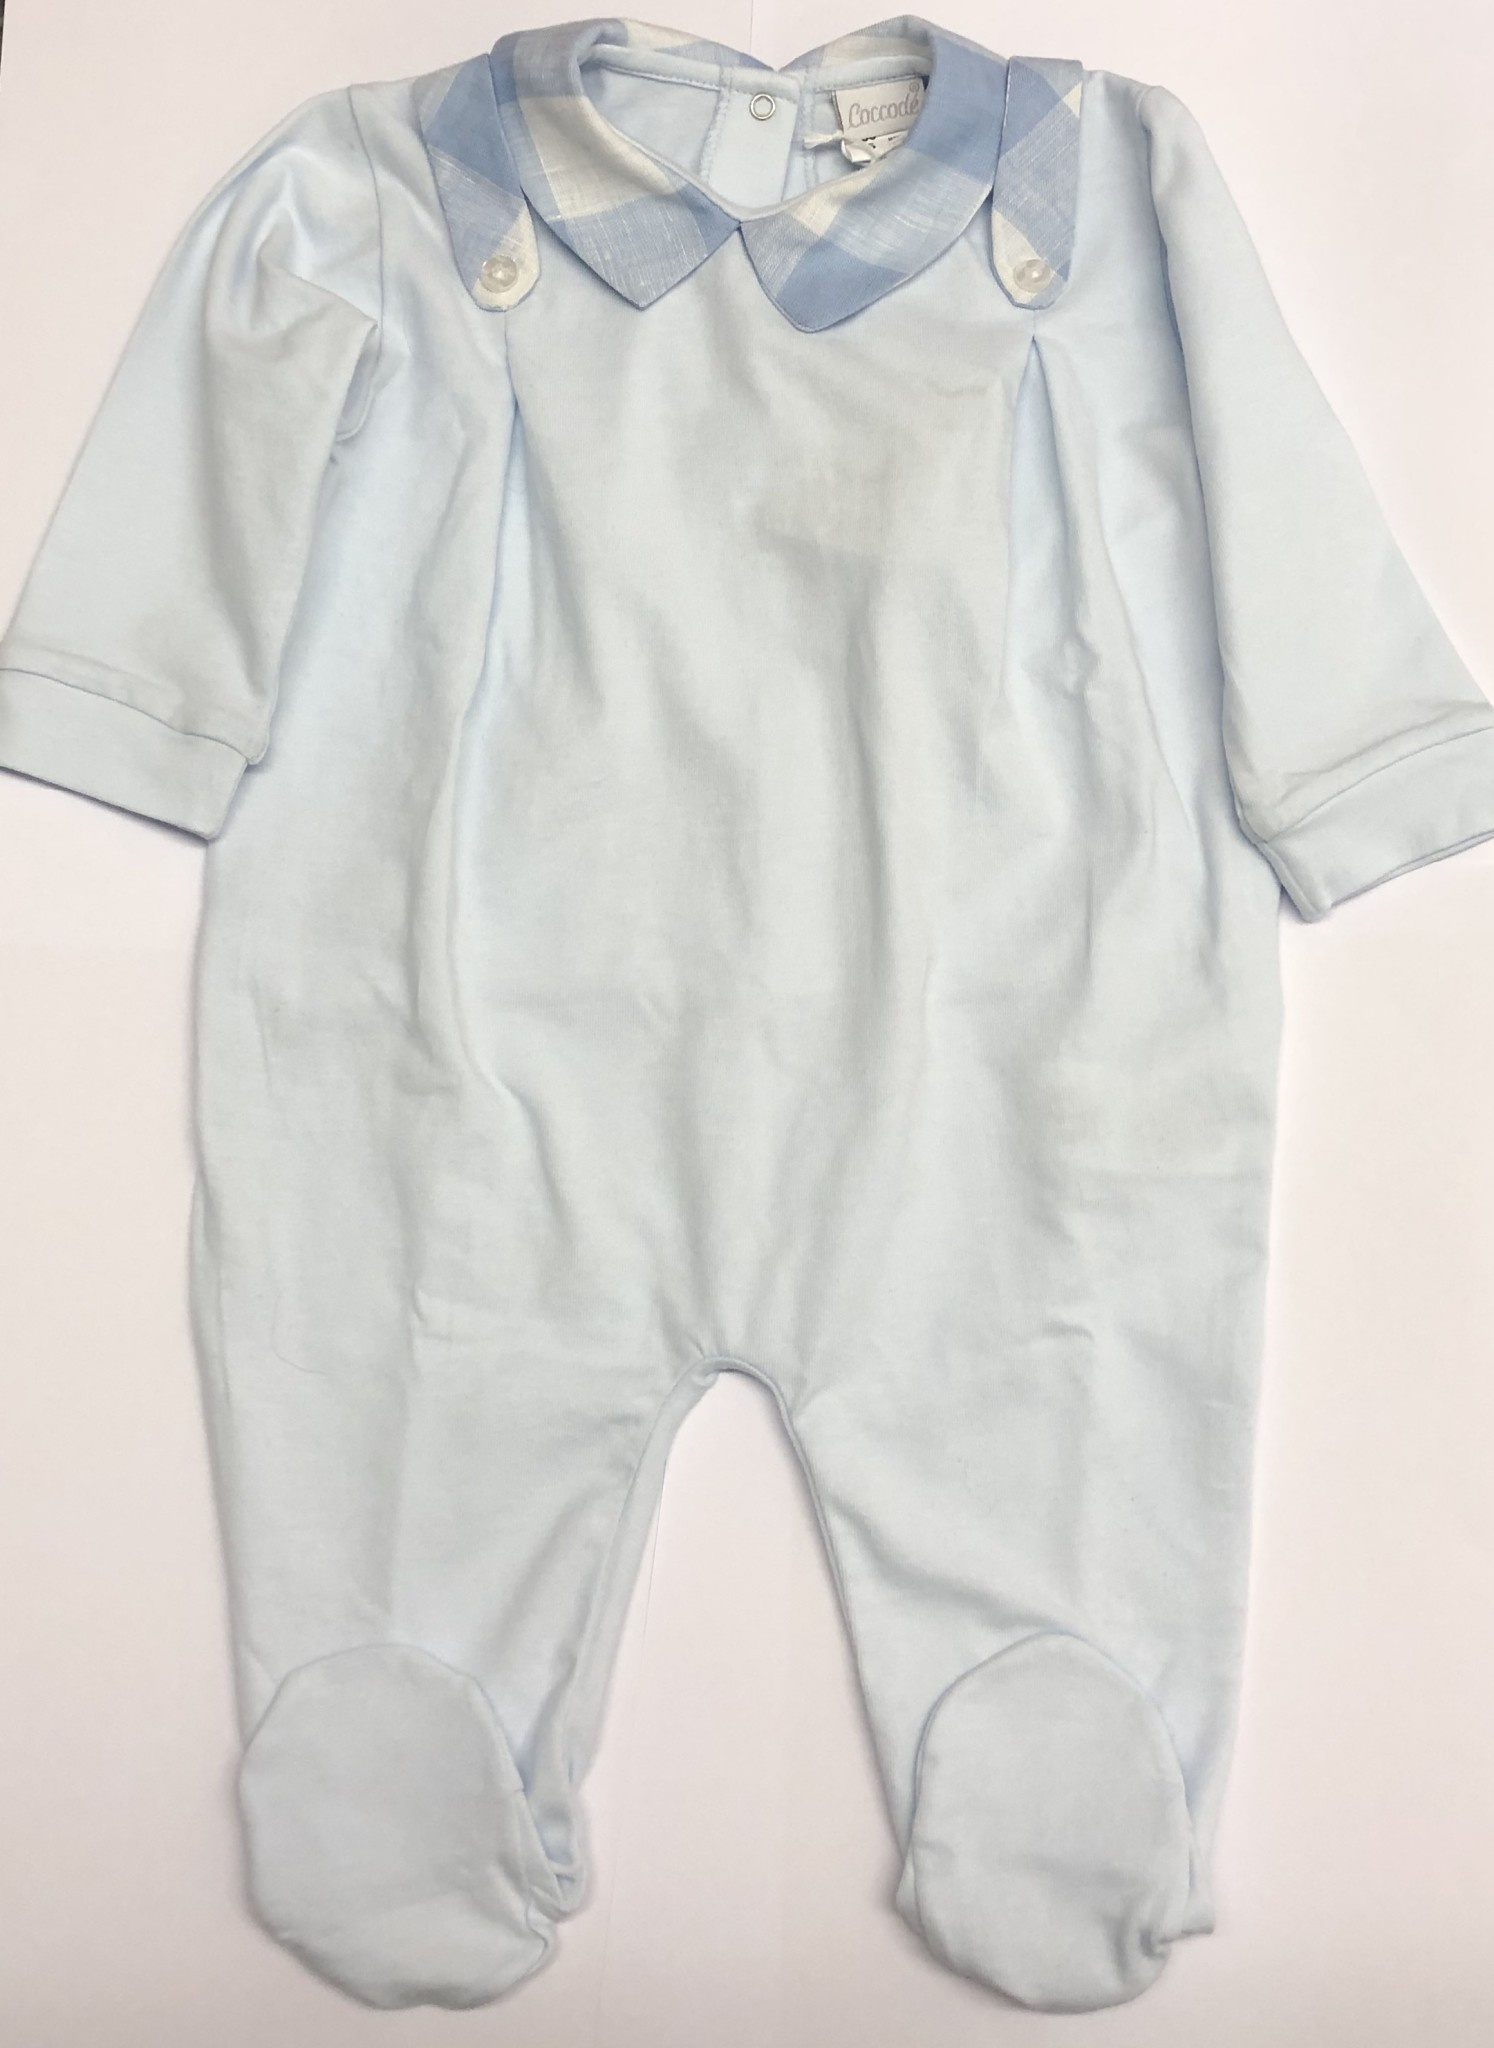 Coccode Coccode Pale Blue Baby Grow with Check Collar